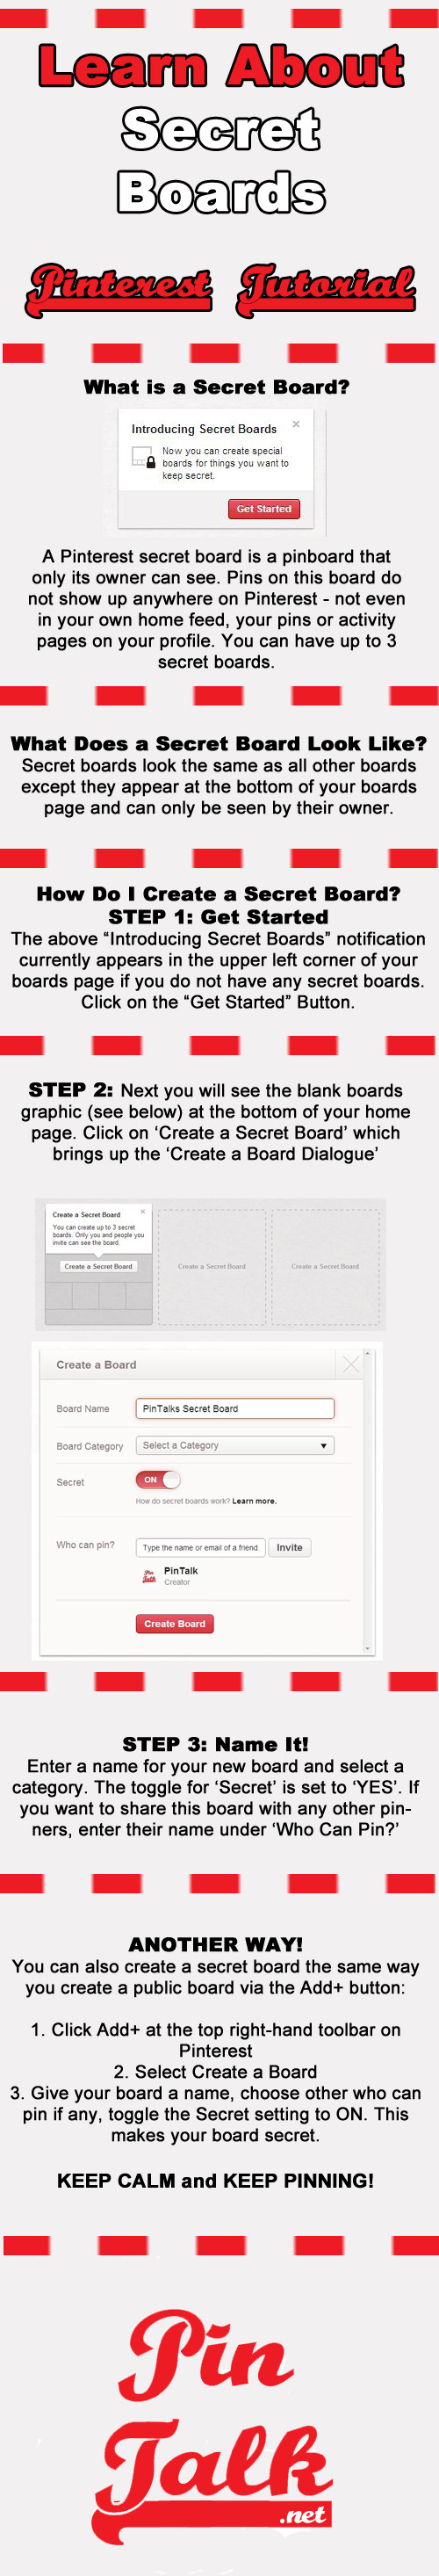 Pinterest Secret Boards Tutorial